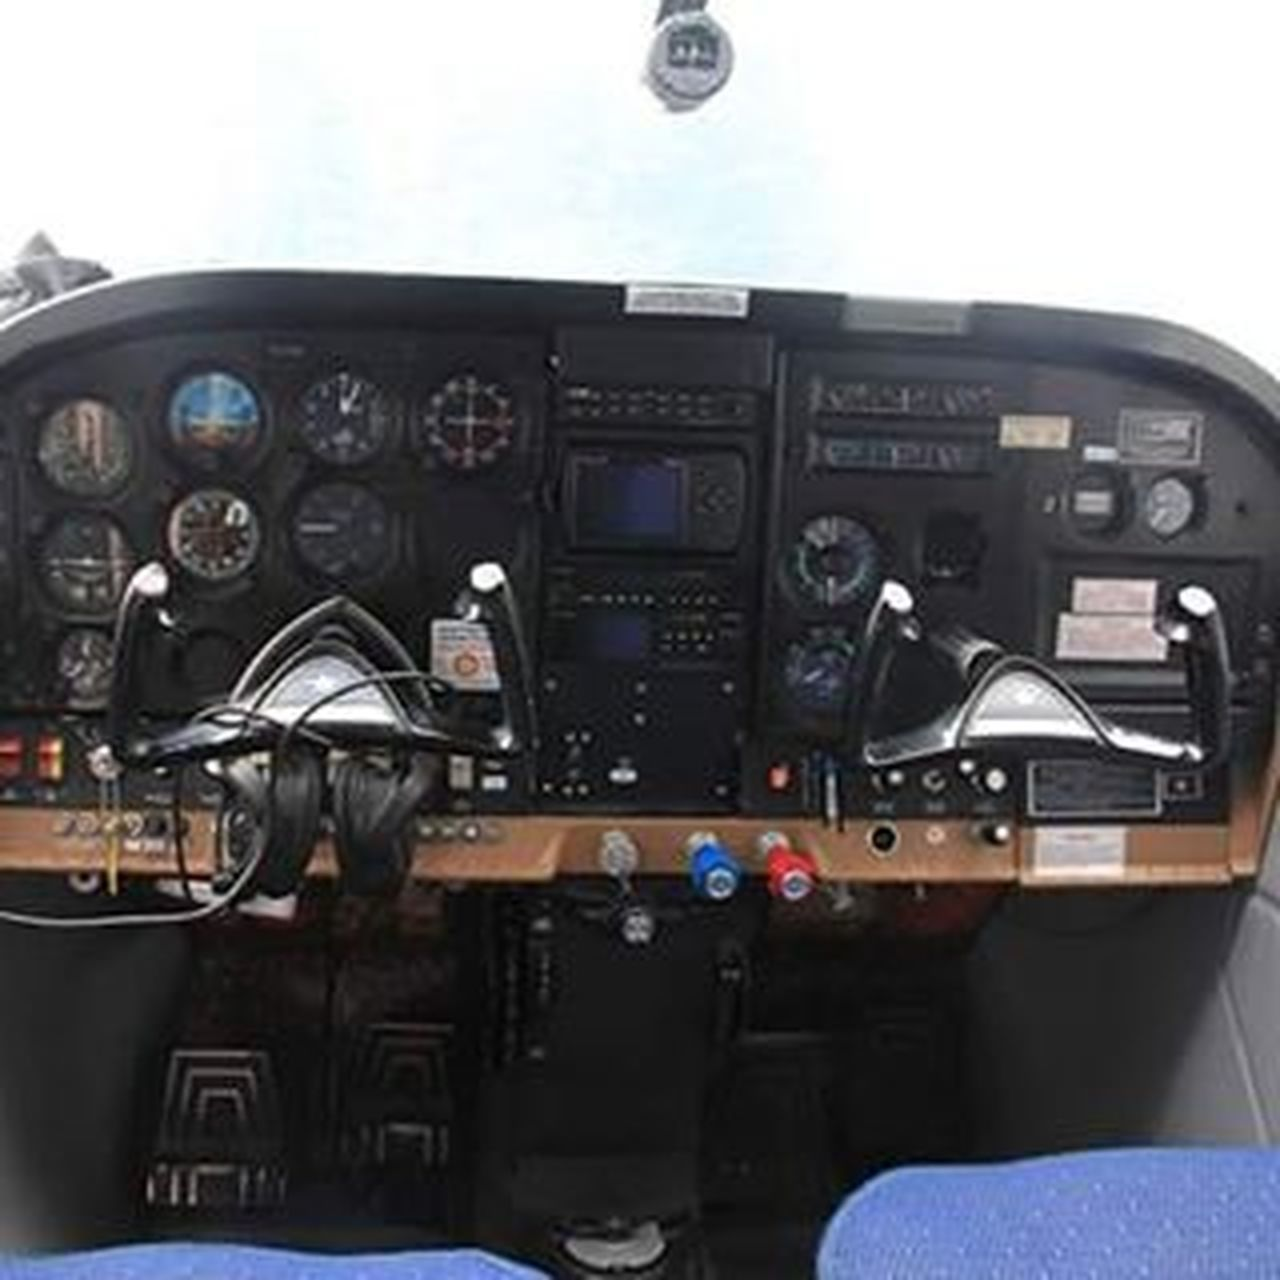 cockpit, air vehicle, transportation, airplane, control, dashboard, helicopter, control panel, aerospace industry, gauge, pilot, flying, no people, indoors, military, piloting, day, close-up